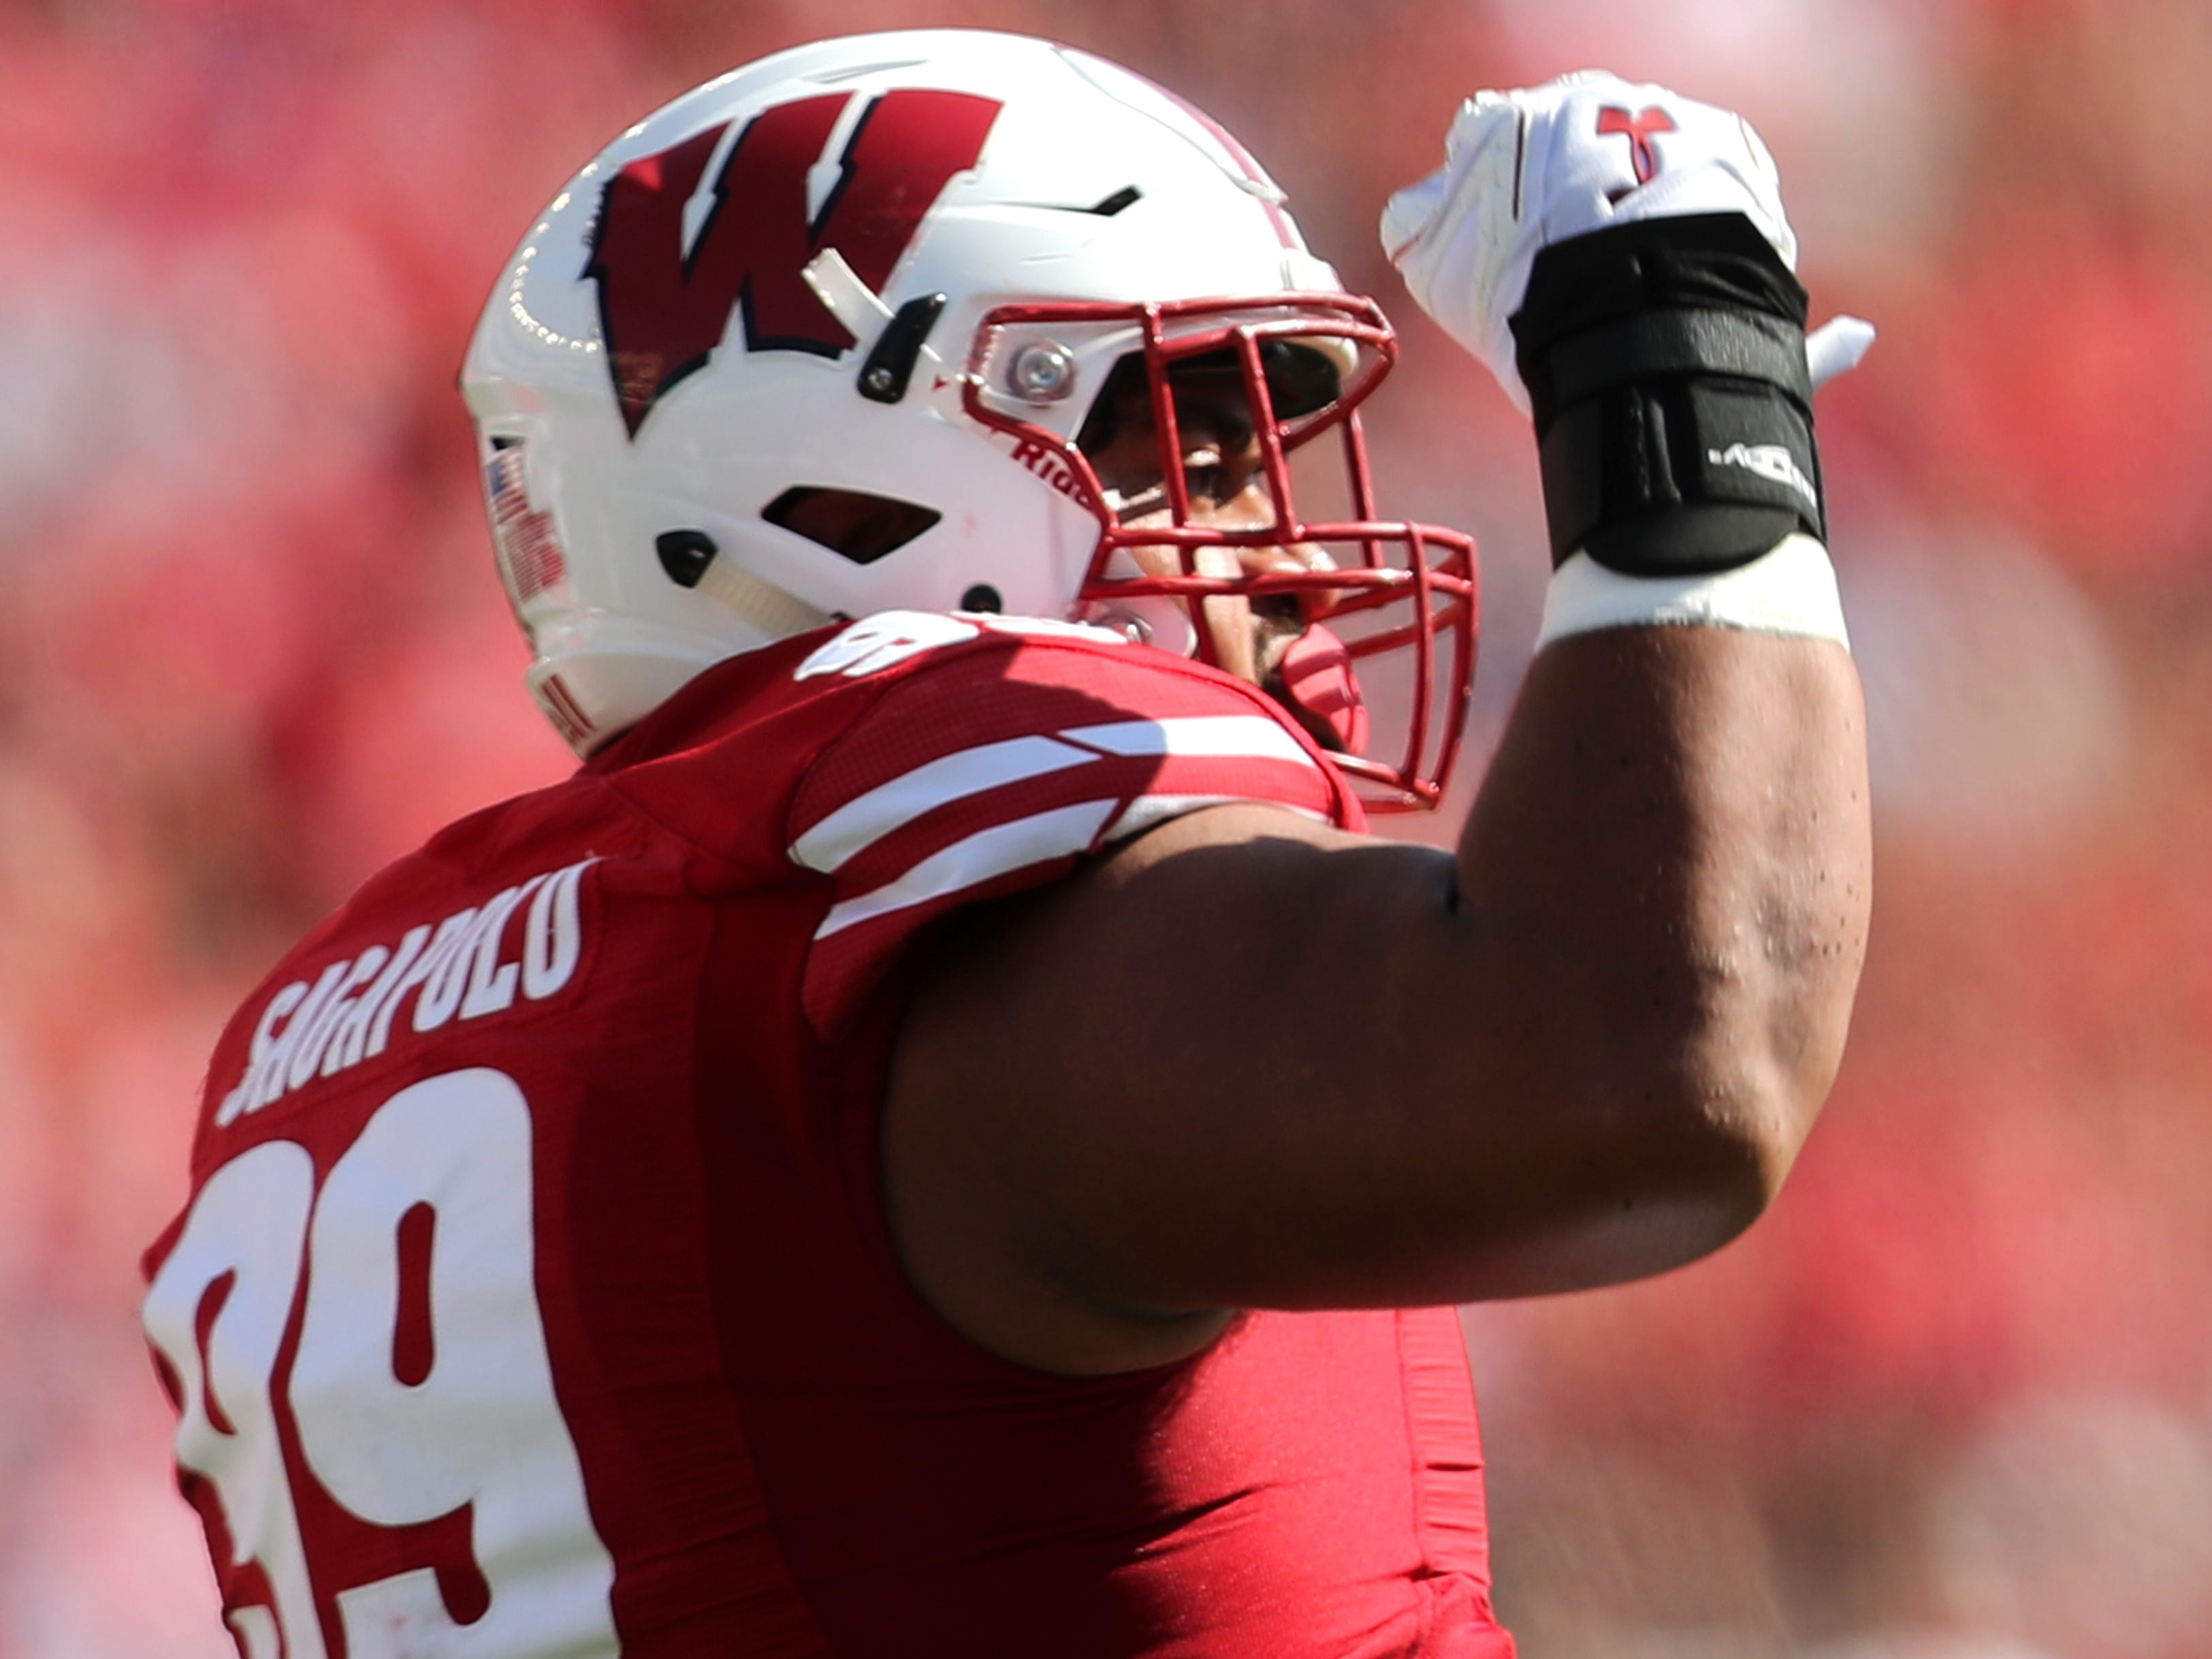 Wisconsin Badgers nose tackle Olive Sagapolu celebrates after a sack.